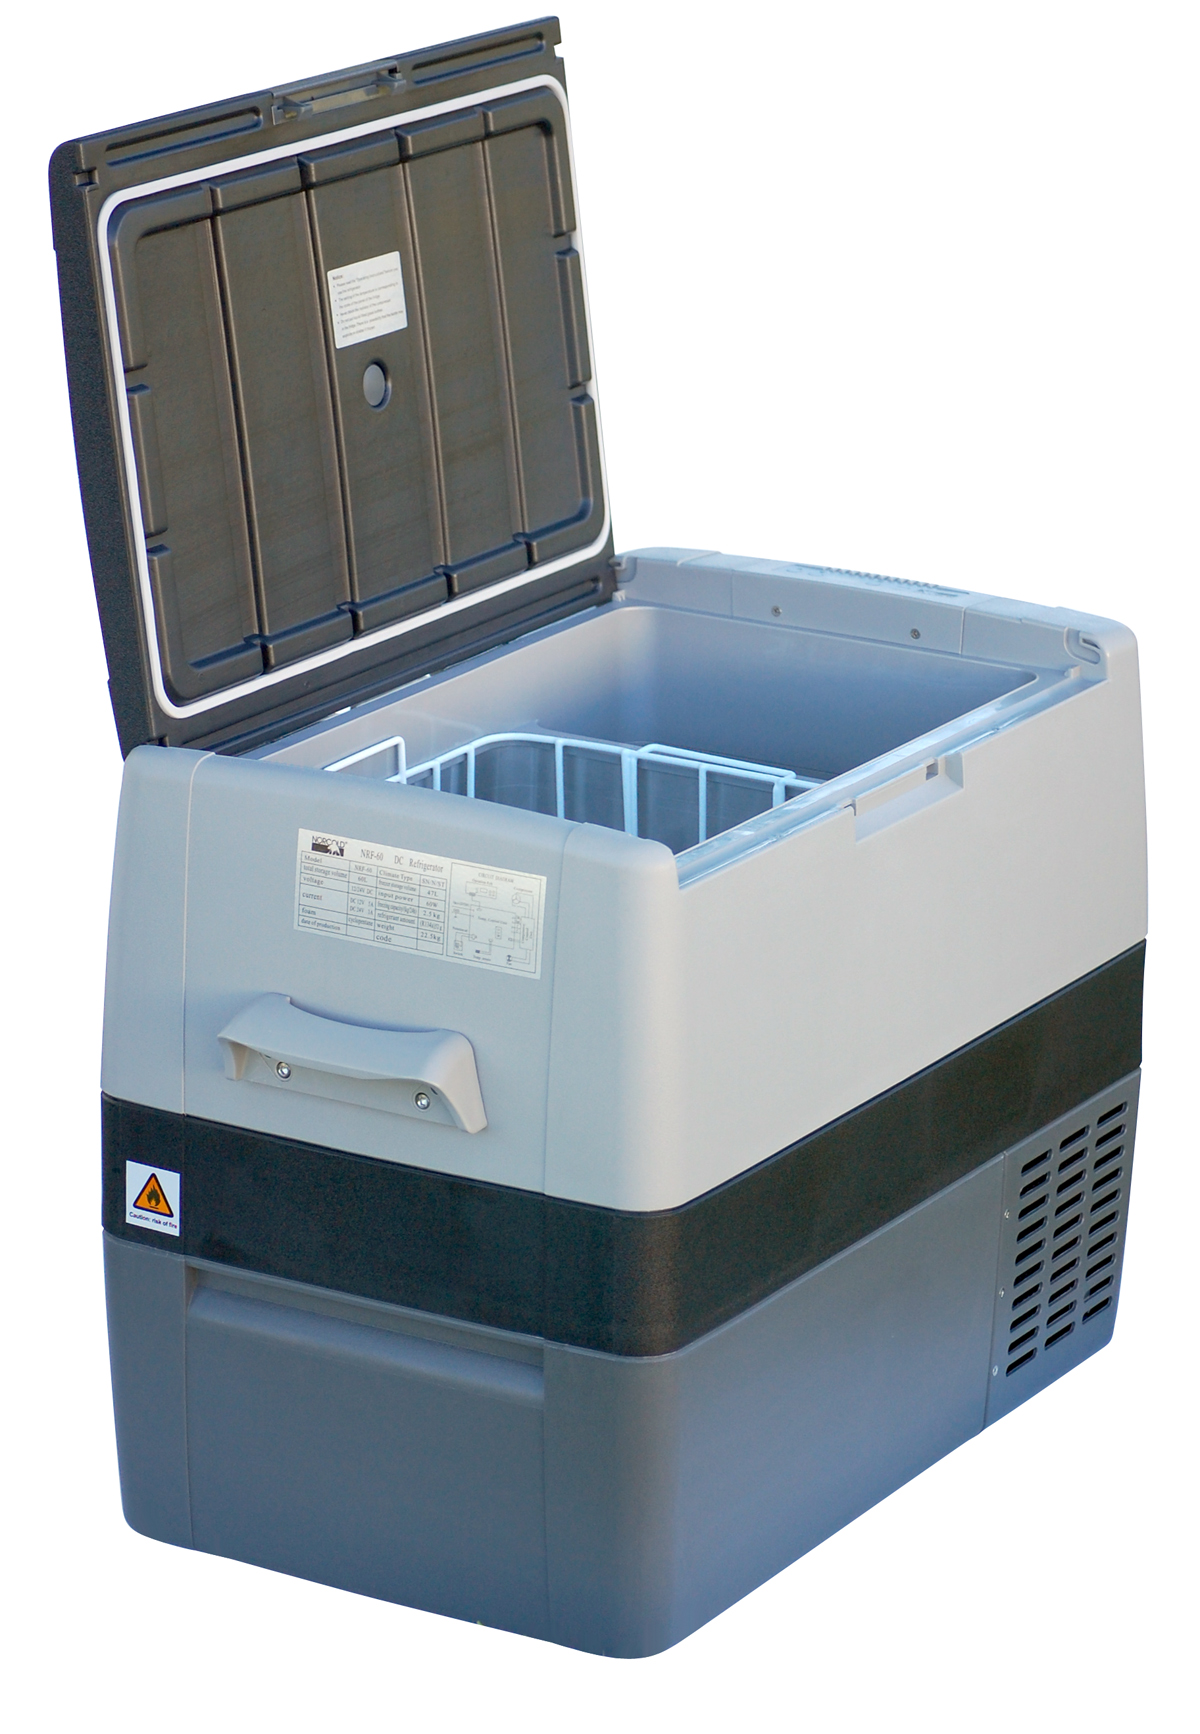 Portable fridge/freezers deliver cold wherever needed